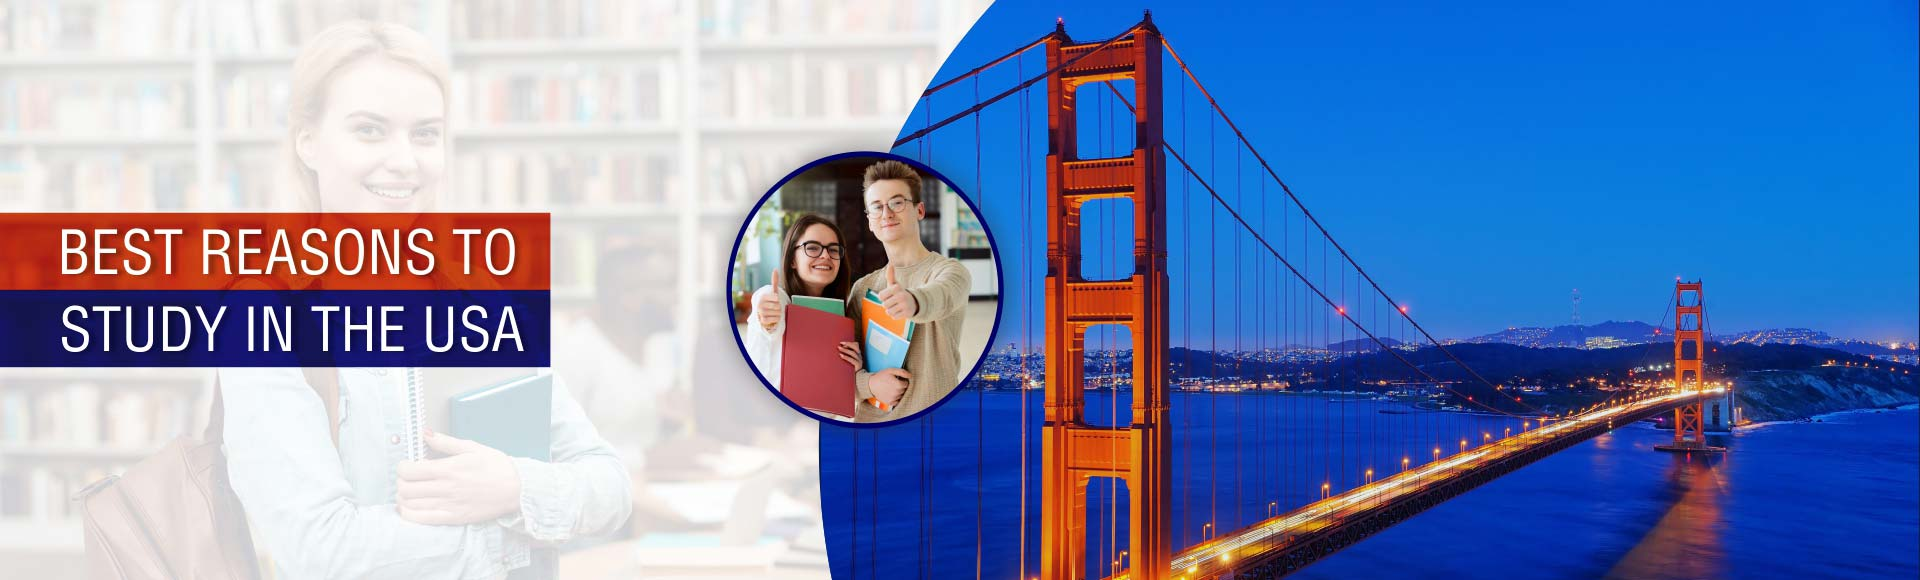 5 Best Reasons to Study in the US